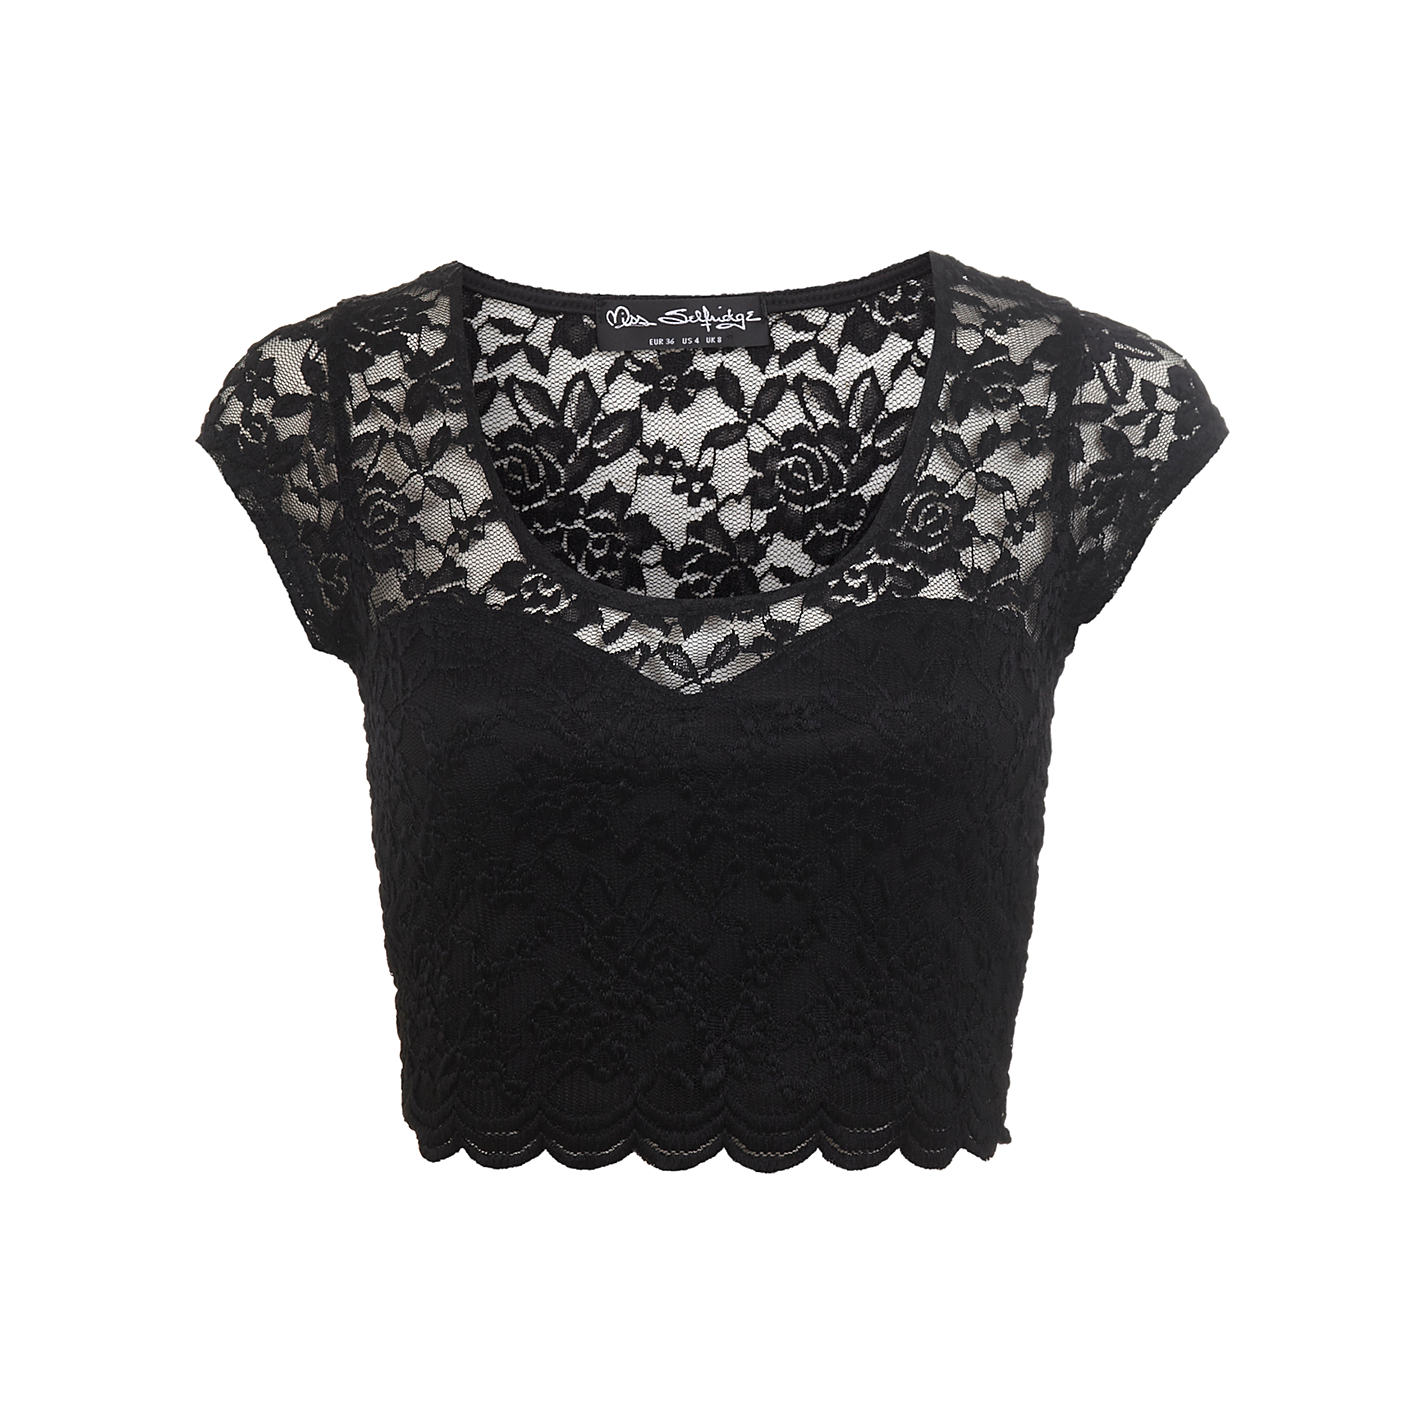 Buy Miss Selfridge Scallop Lace Crop Top, Black | John Lewis